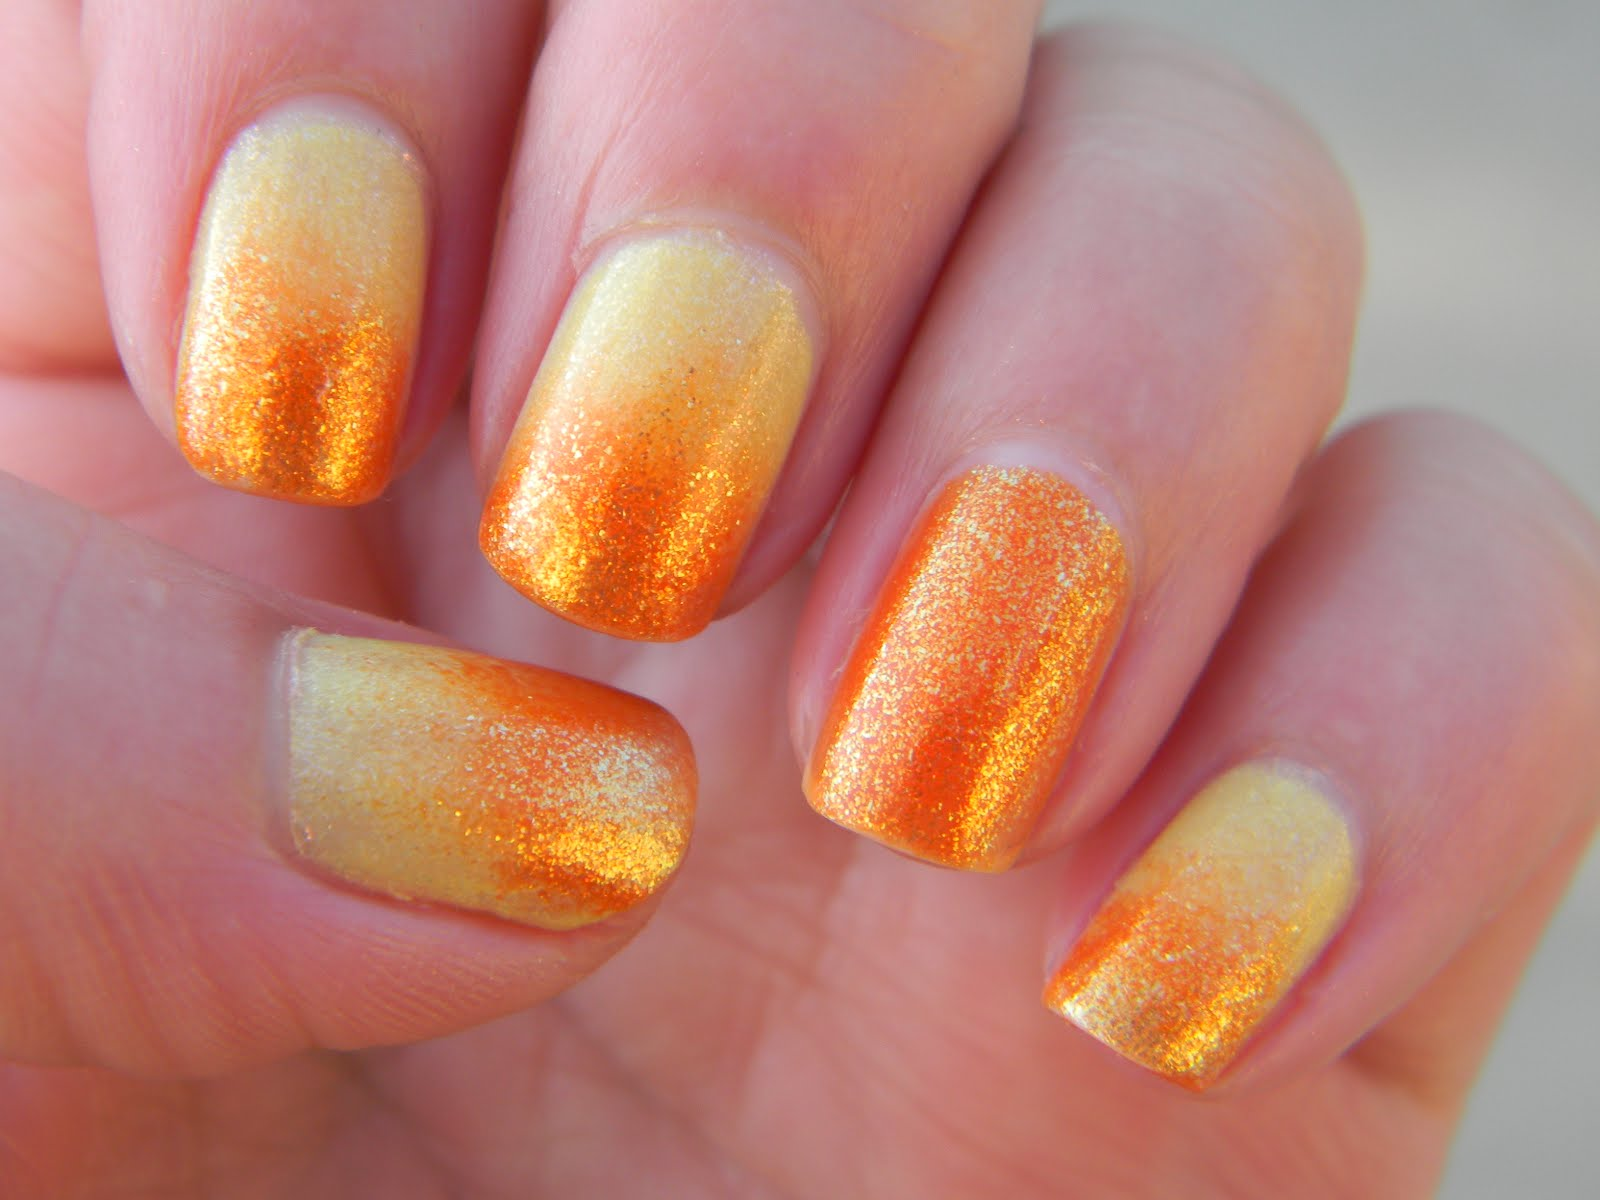 Orange gold nail art kawaii nail art nails inc in style candy view images nail designs orange and gold art prinsesfo Image collections